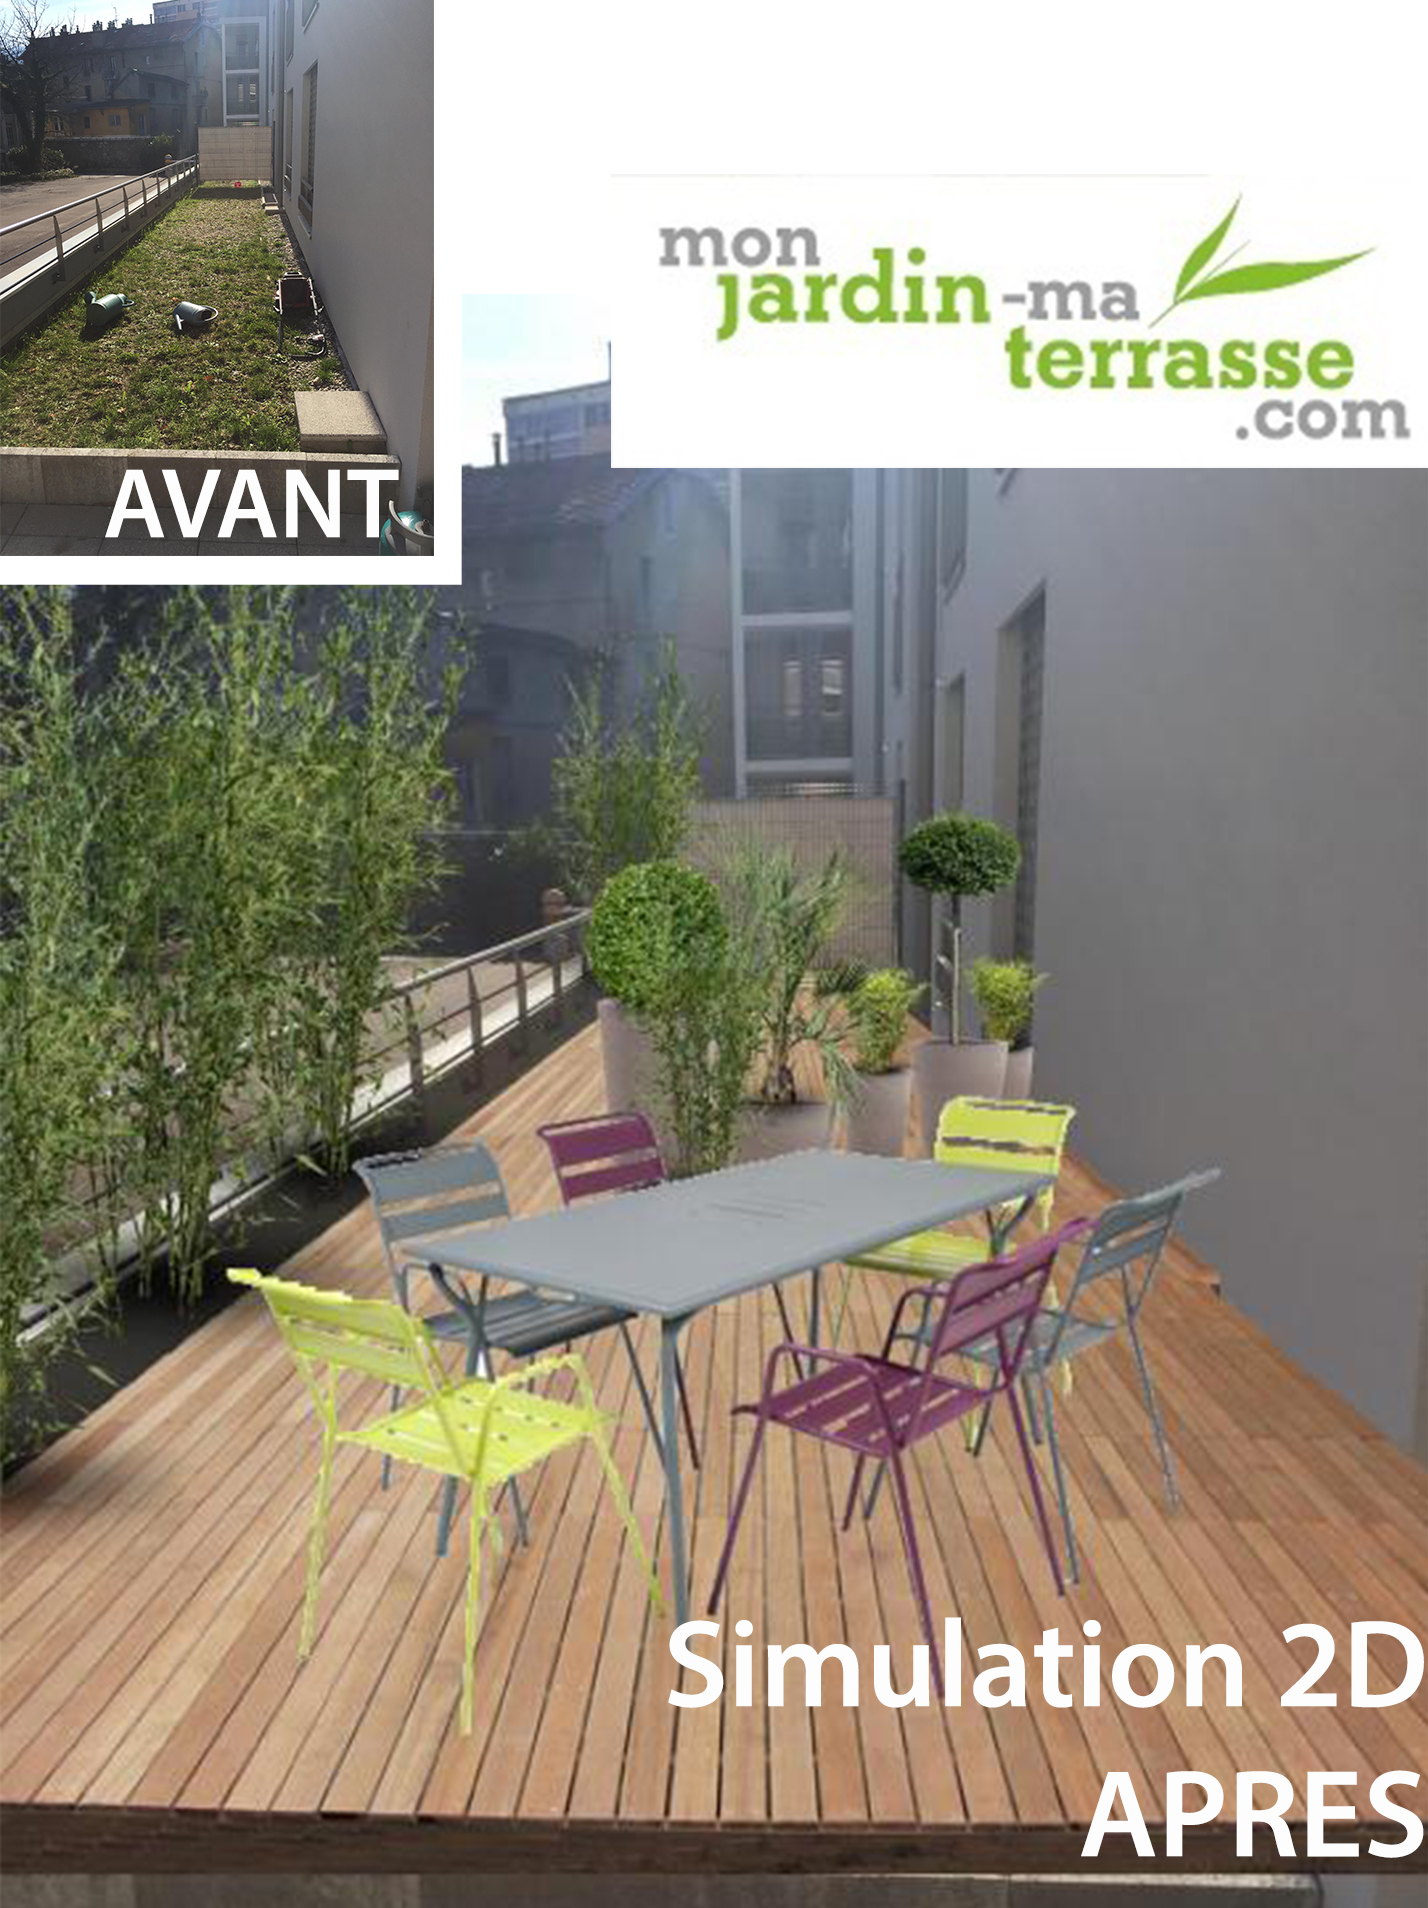 Am nagement du toit terrasse d un appartement monjardin for Amenagement terrasse exterieure appartement